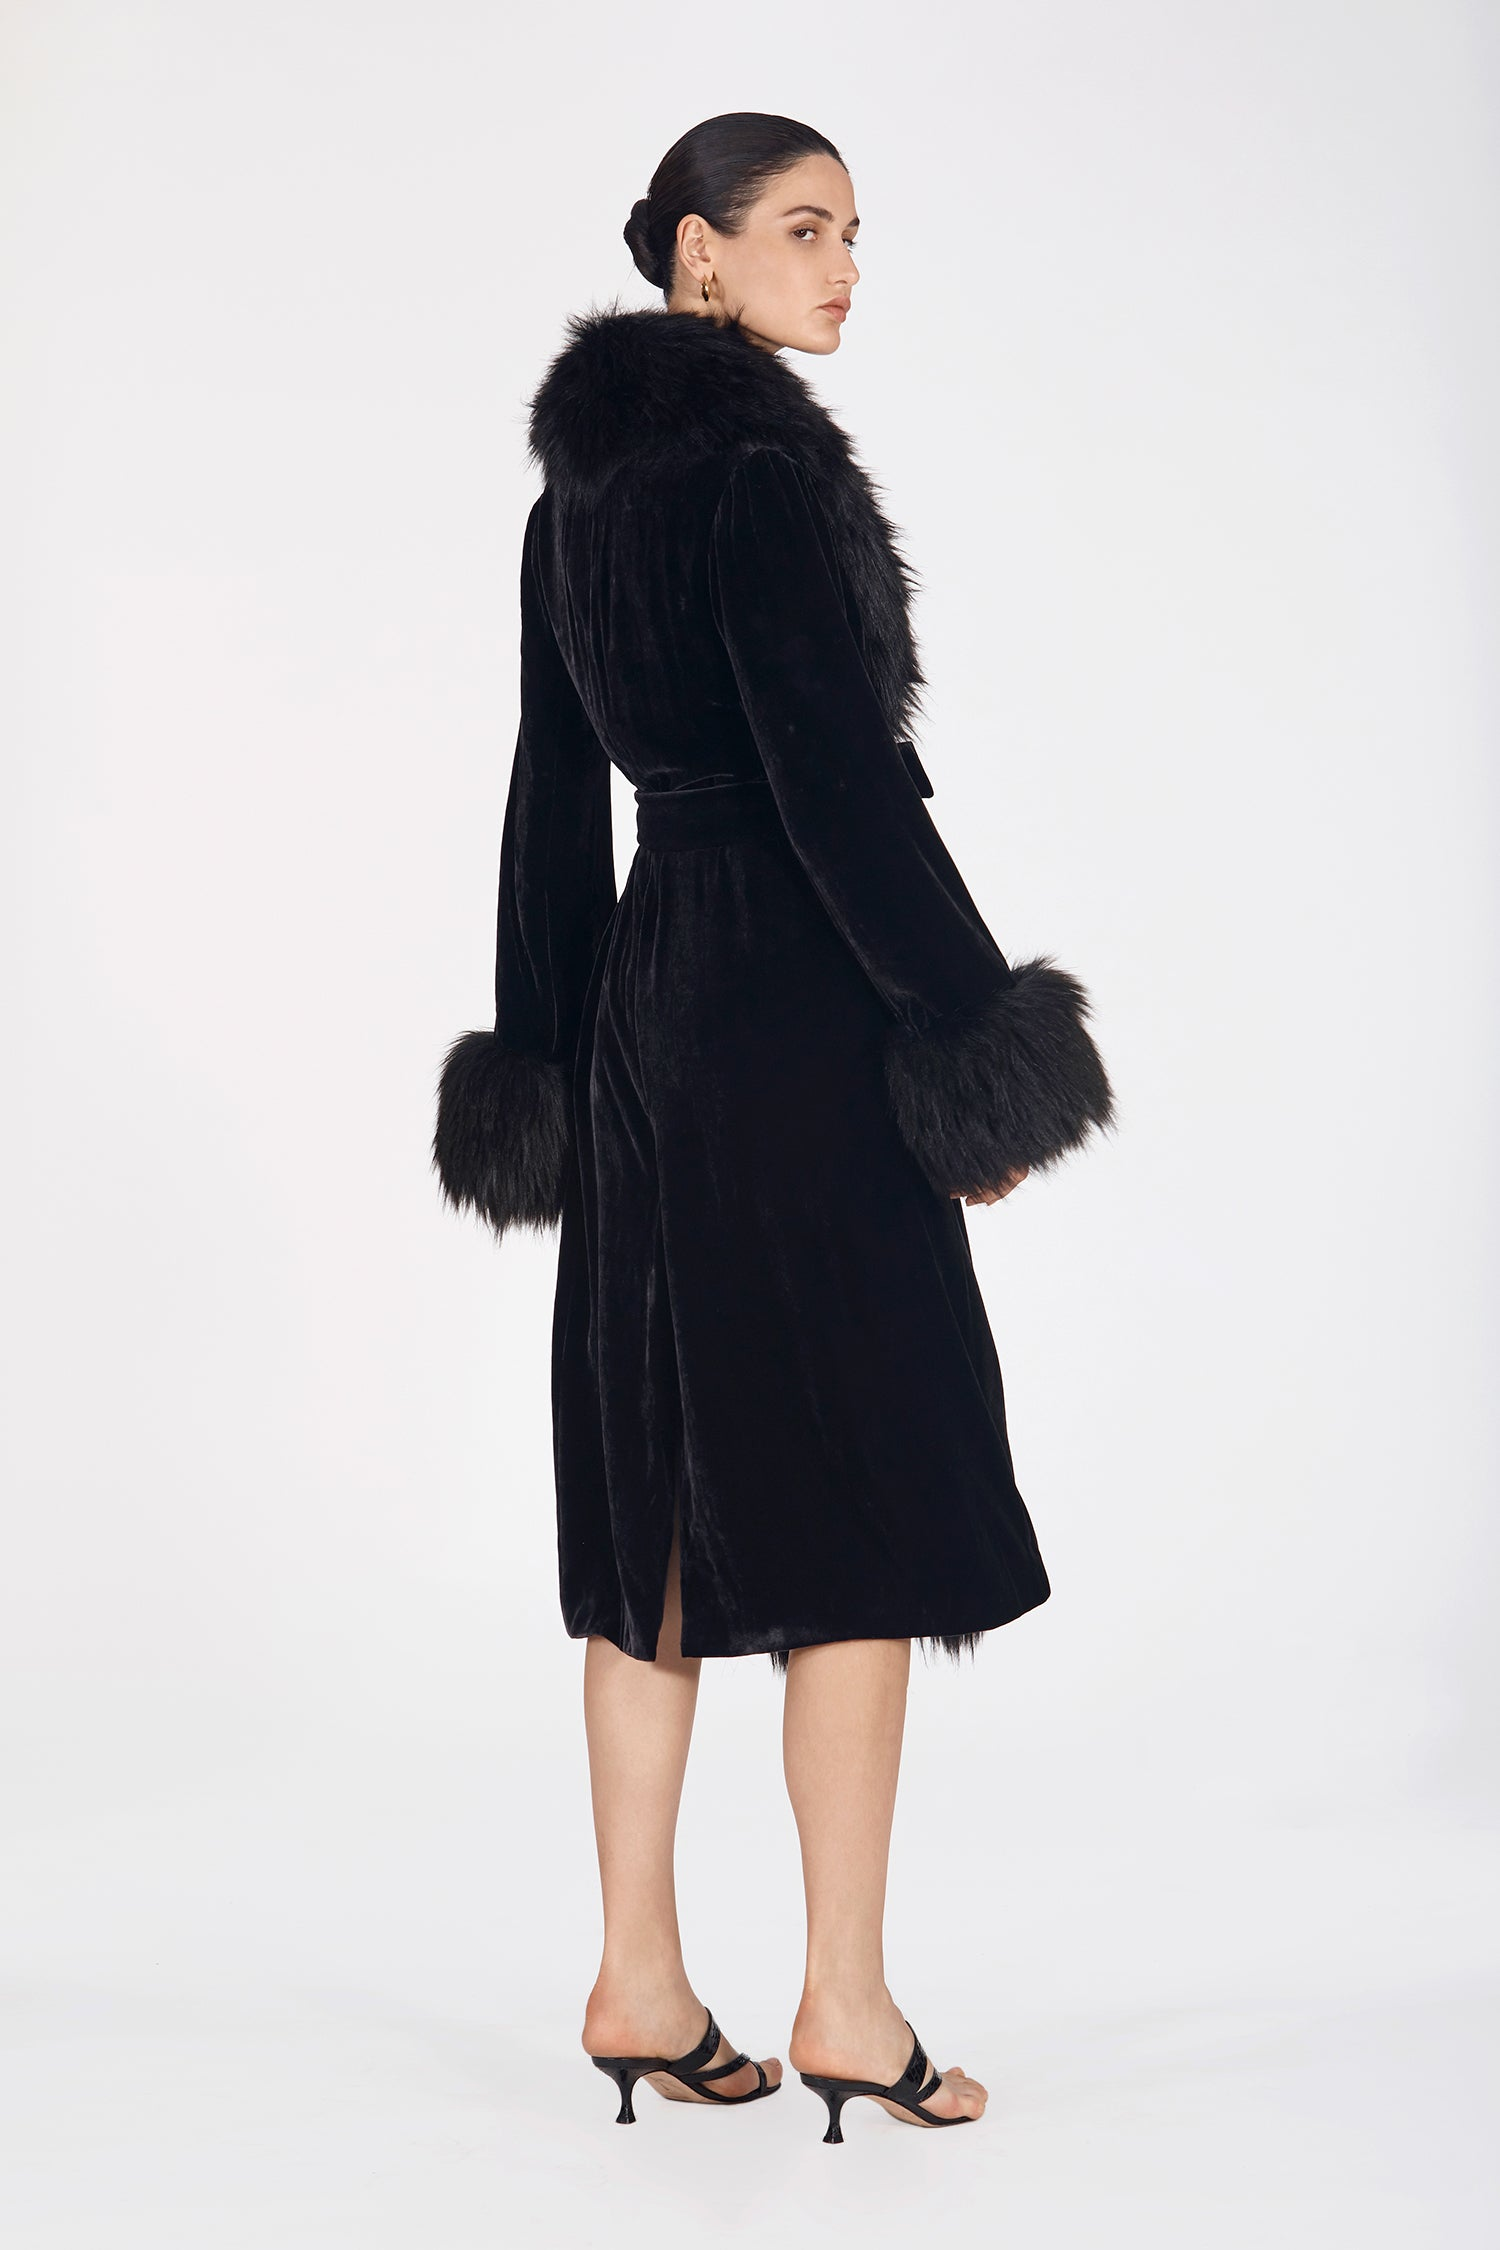 Marei1998's Iconic Powderpuff Long Velvet Coat In Black Color. The Silk Velvet Material, Combined With Faux Fur Trims, Creates A Contemporary Vintage Look. Featuring Wide Lapel Collar And Bell Sleeves, It Is Finished With A Self-Tie Belt To Define The Waist. As Worn By The Model. Side View. Resort 2020 Collection - Furless Friendship.